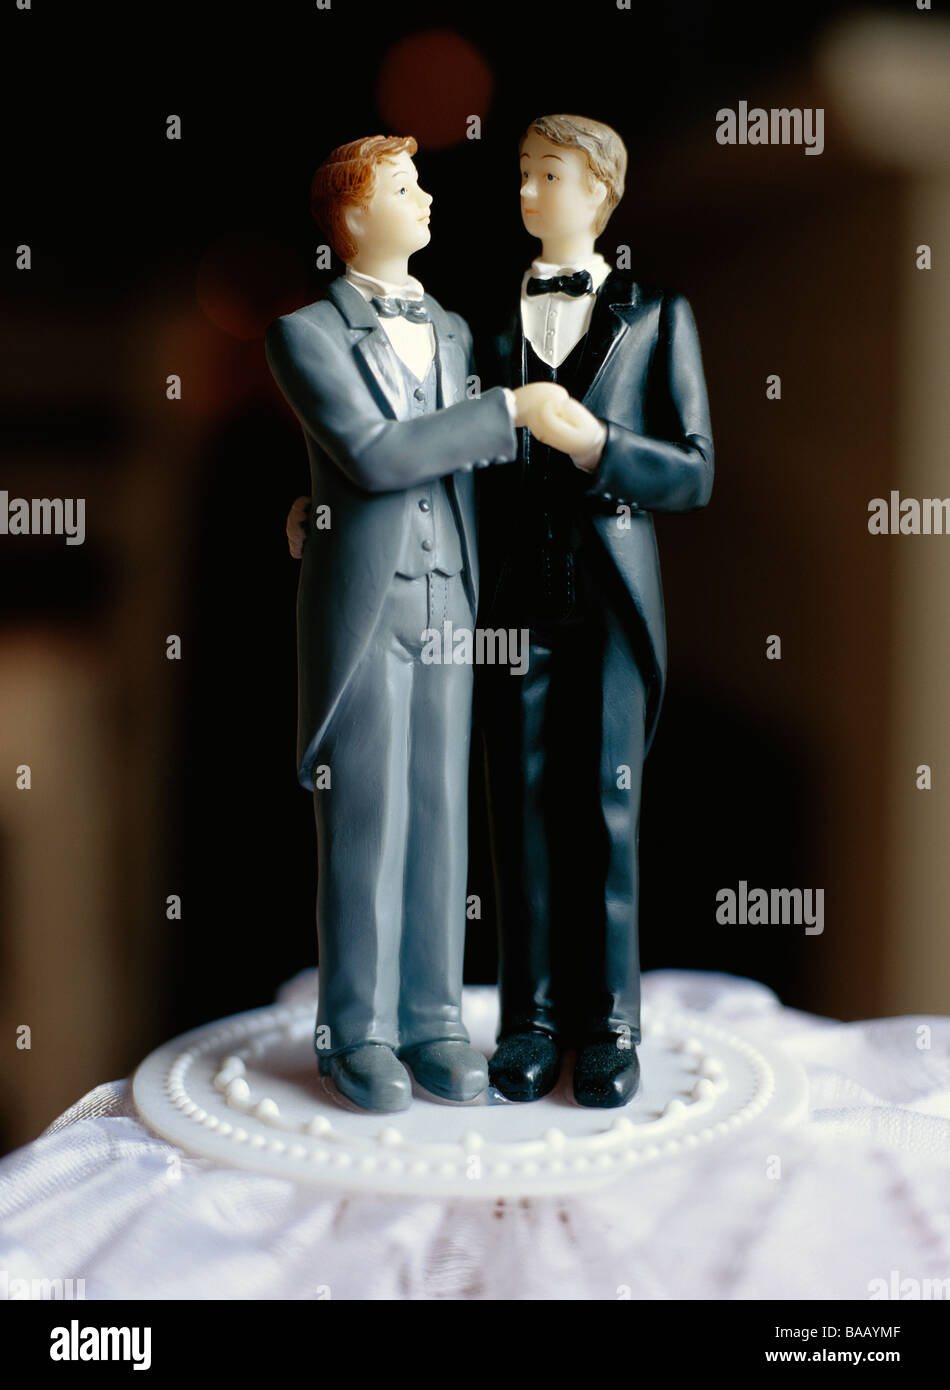 A gay bridal couple on a cake, Sweden. Stock Photo